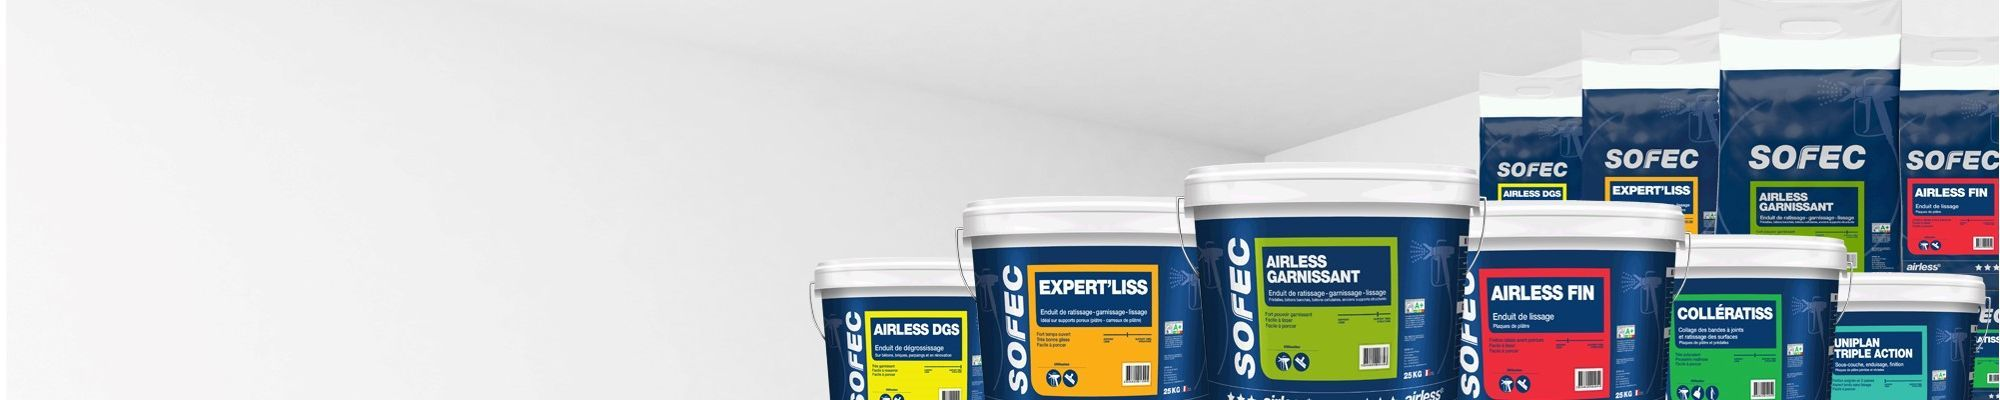 With innovative spirit, SOFEC design Airless Coatings for all purposes and surfaces treatment.